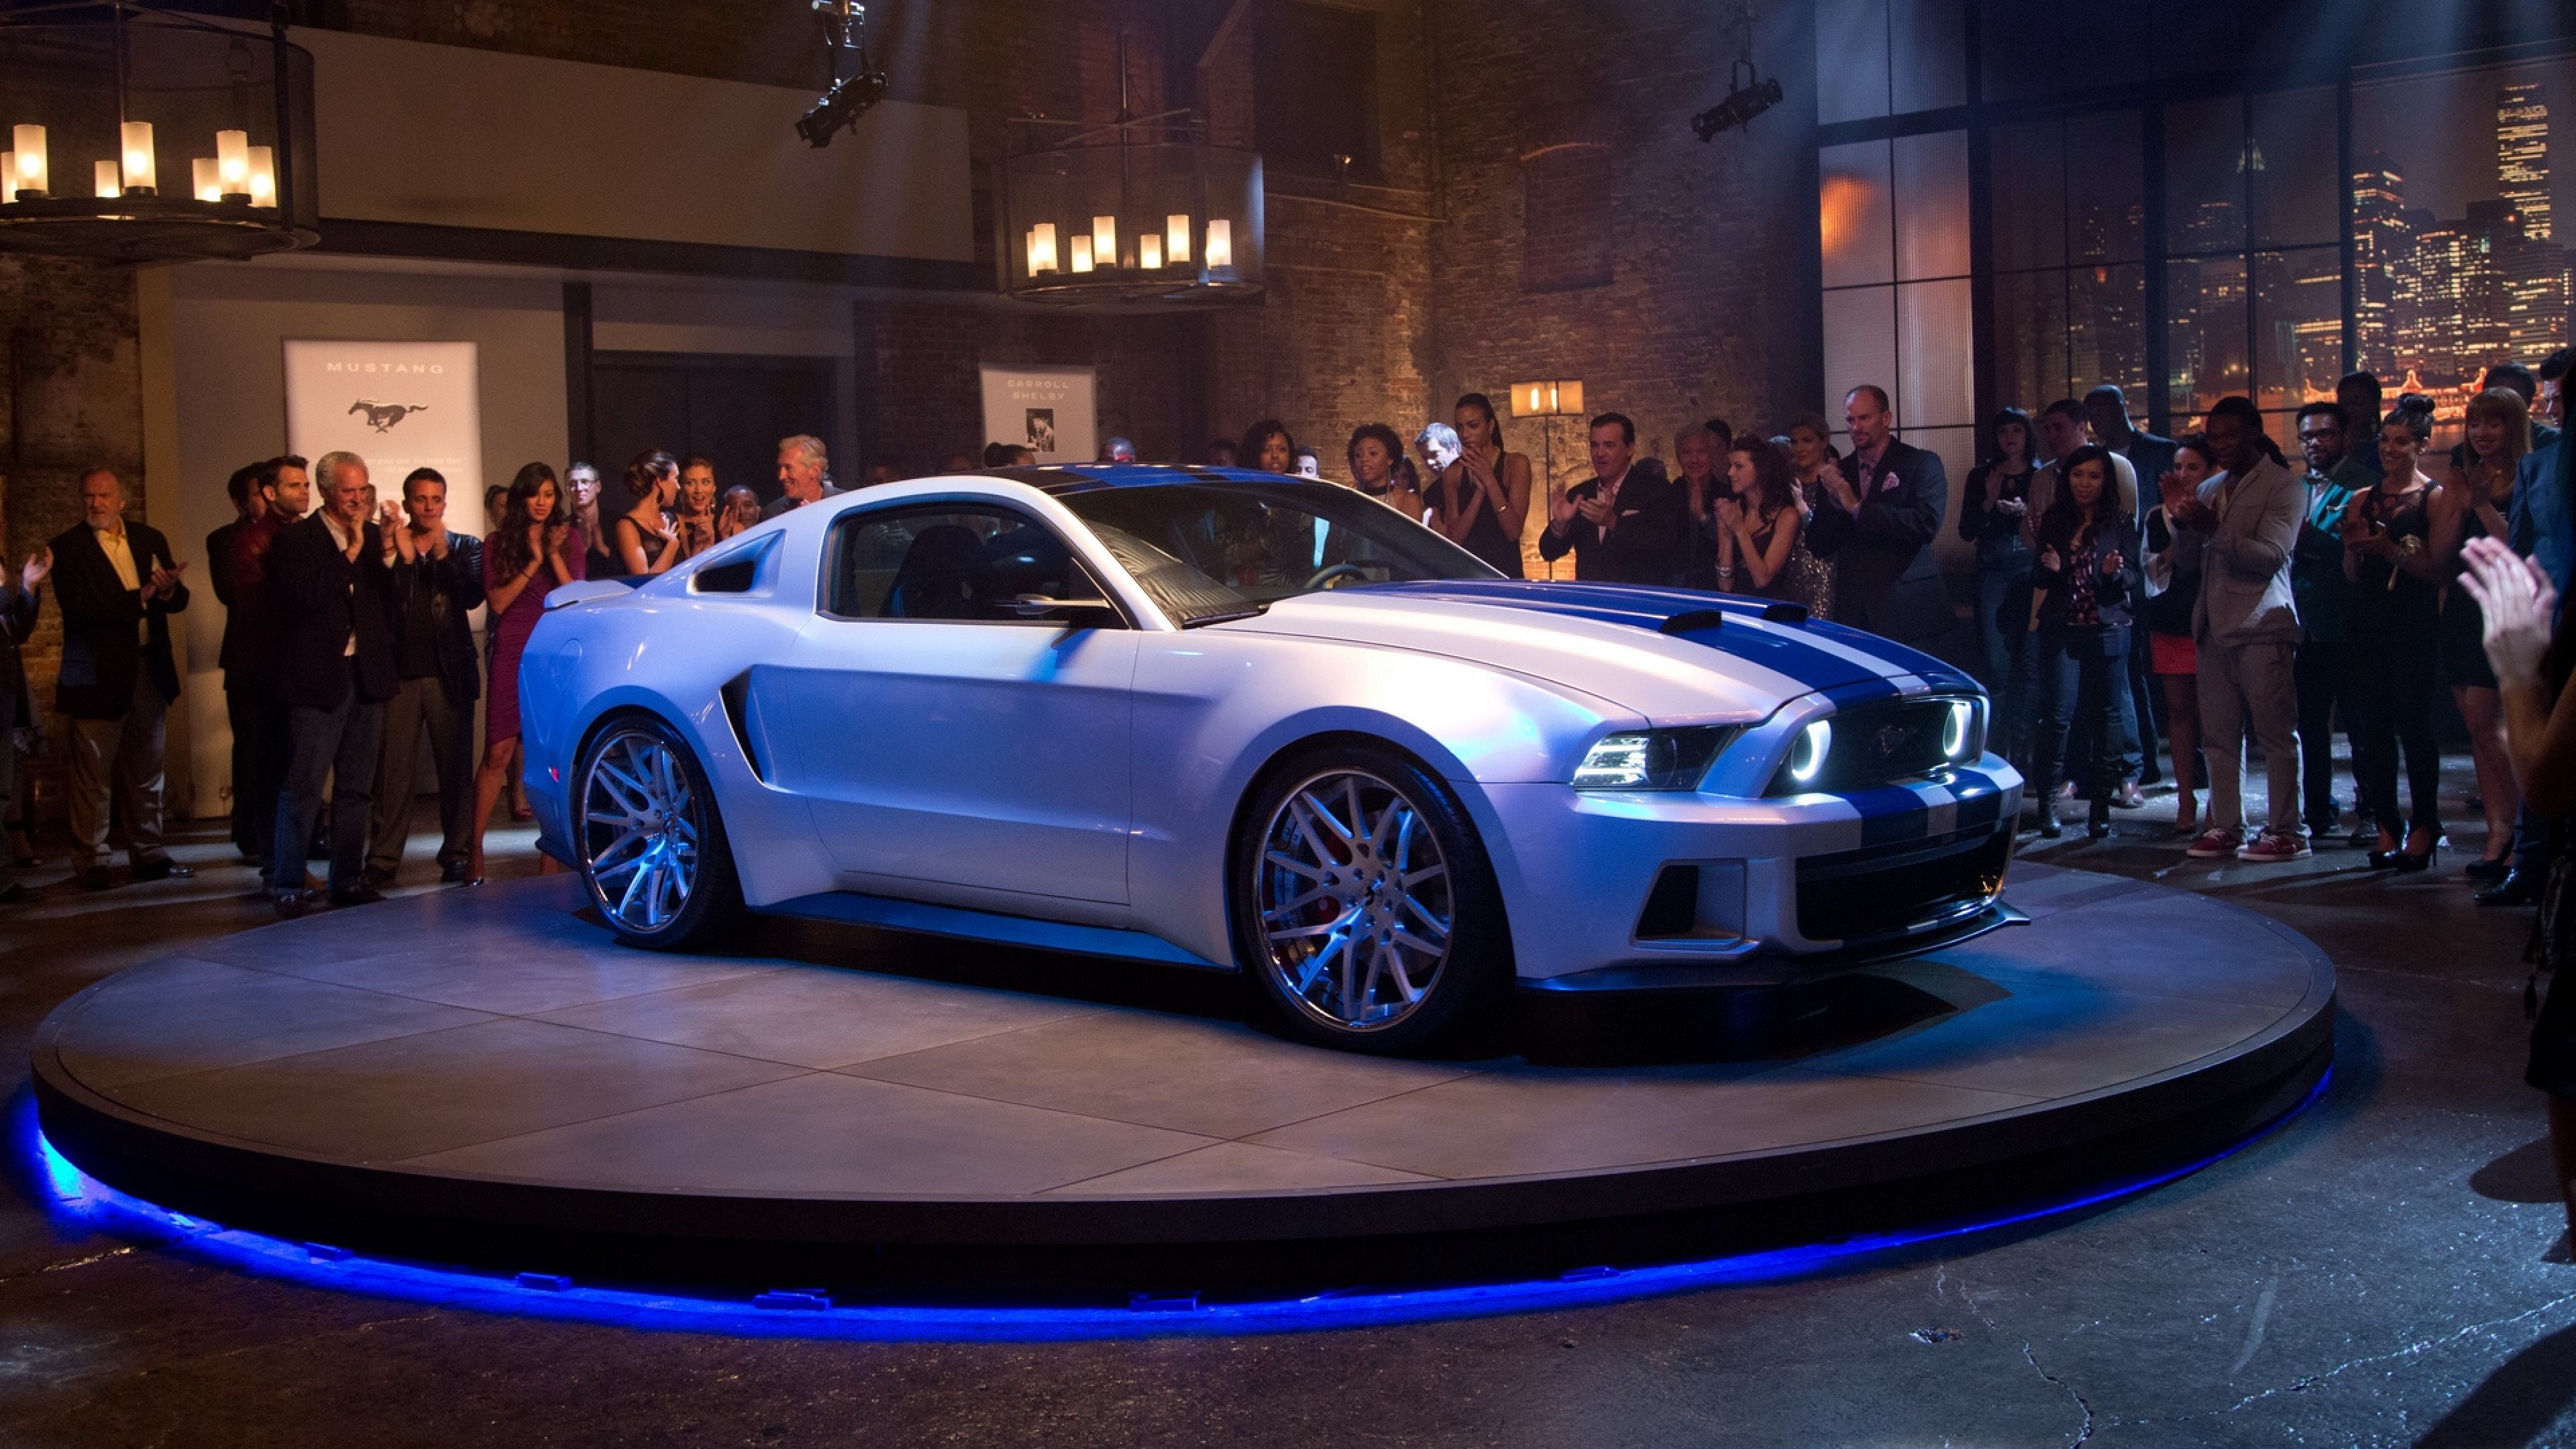 Need For Speed Ford Mustang Hd Wallpaper 4k Ultra Hd Hd